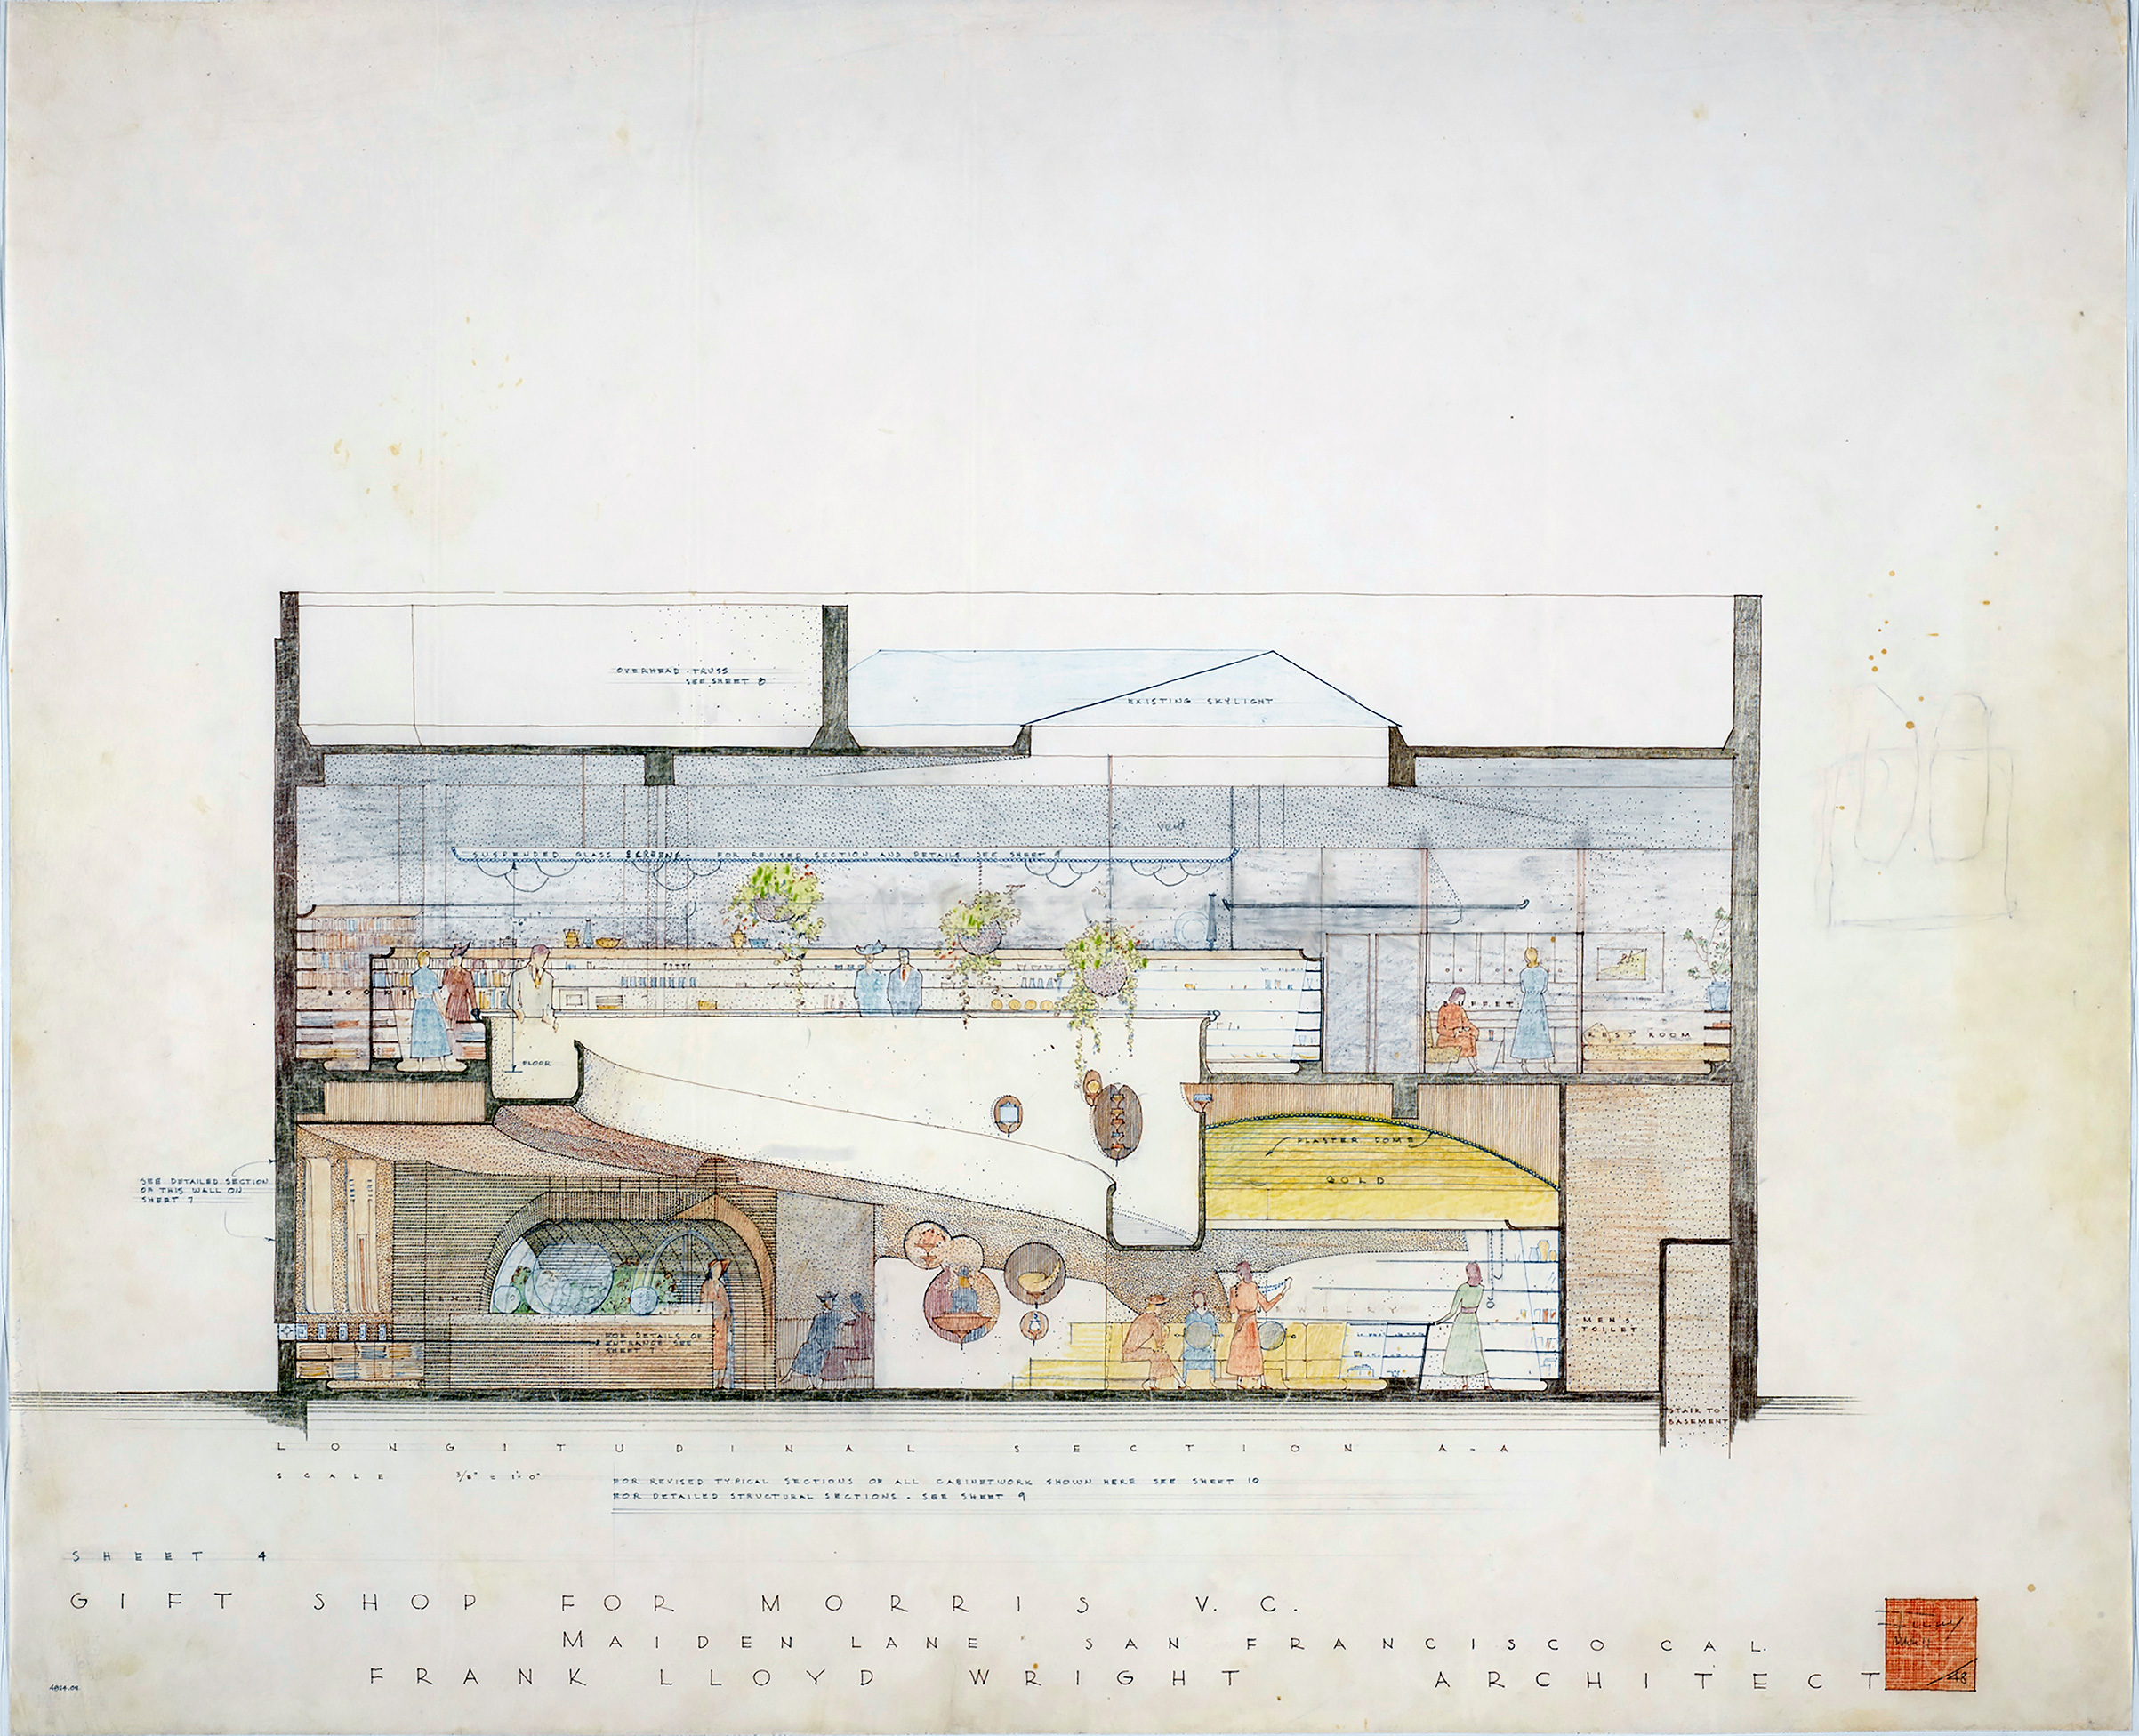 Frank Lloyd Wright (American, 1867–1959). V.C. Morris Shop, San Francisco. 1948–49. Longitudinal section. Pencil and colored pencil on paper.